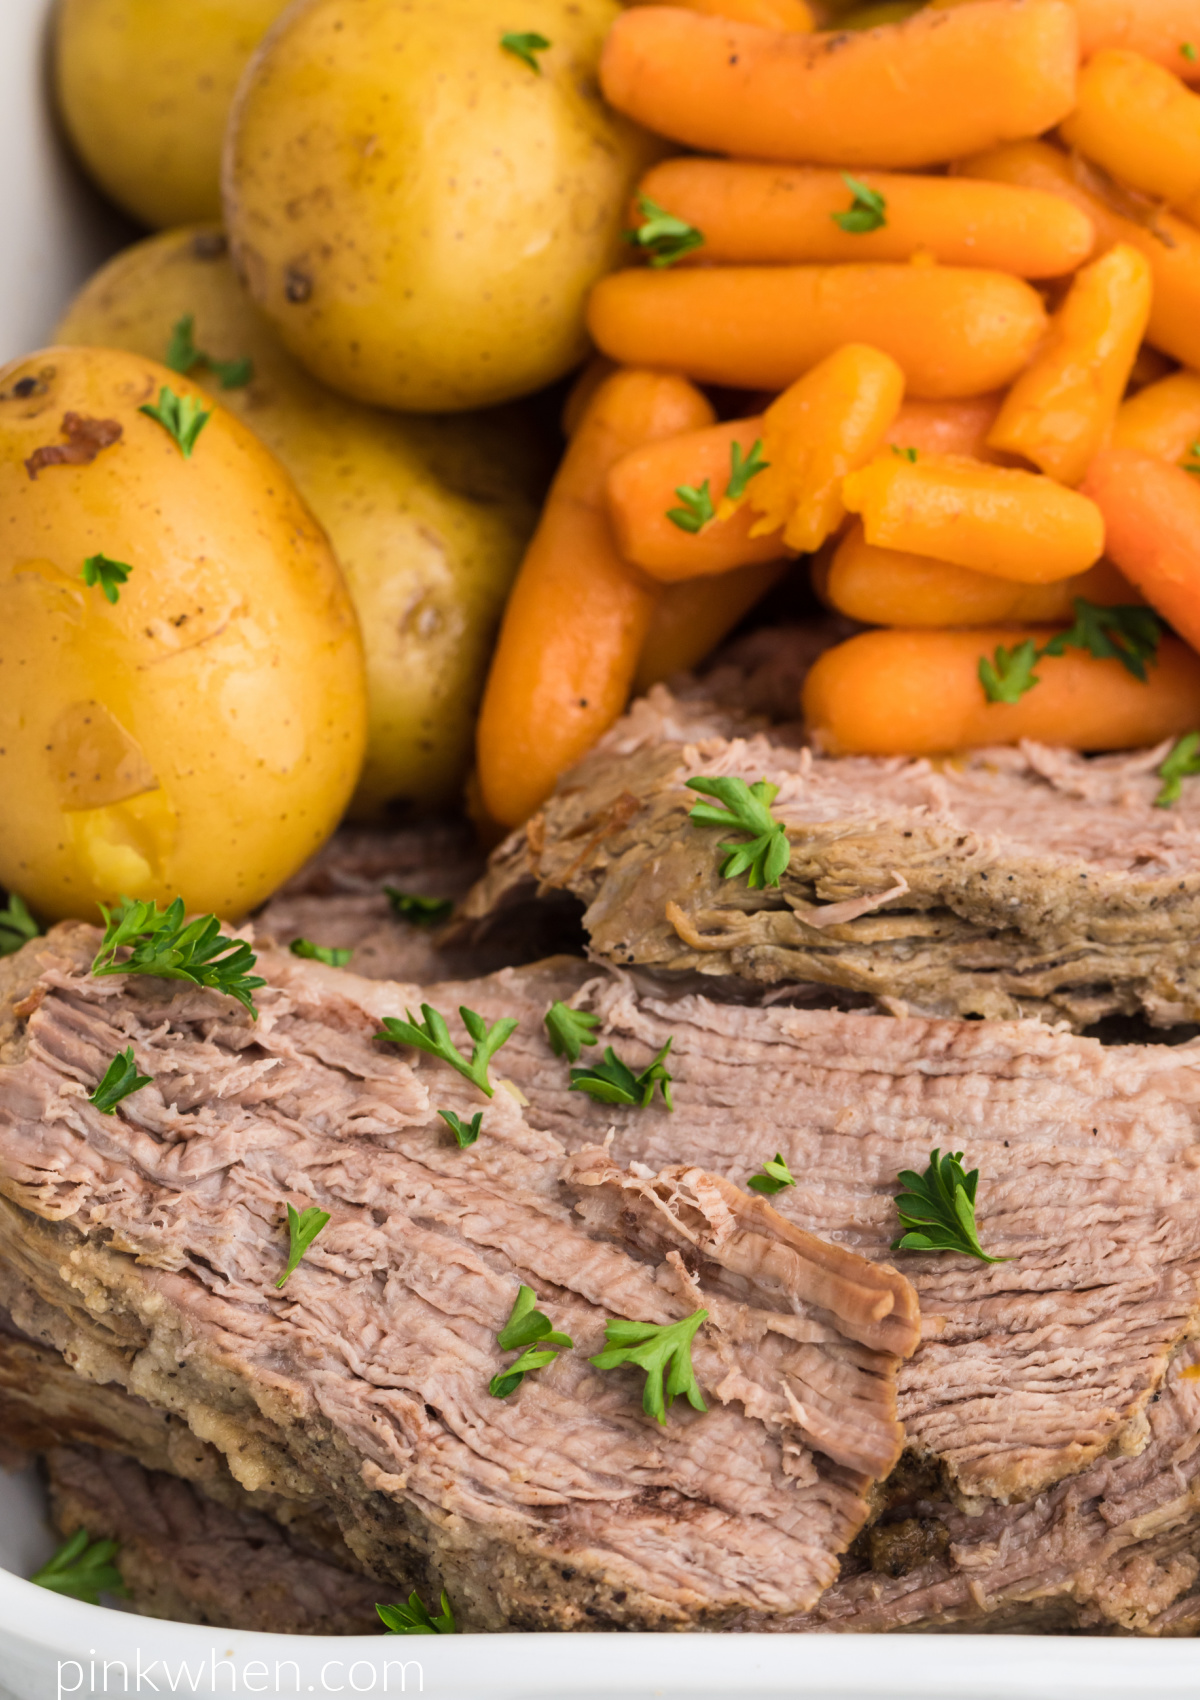 Instant Pot Tri Tip roast sliced and served with vegetables and garnished with fresh parsley.